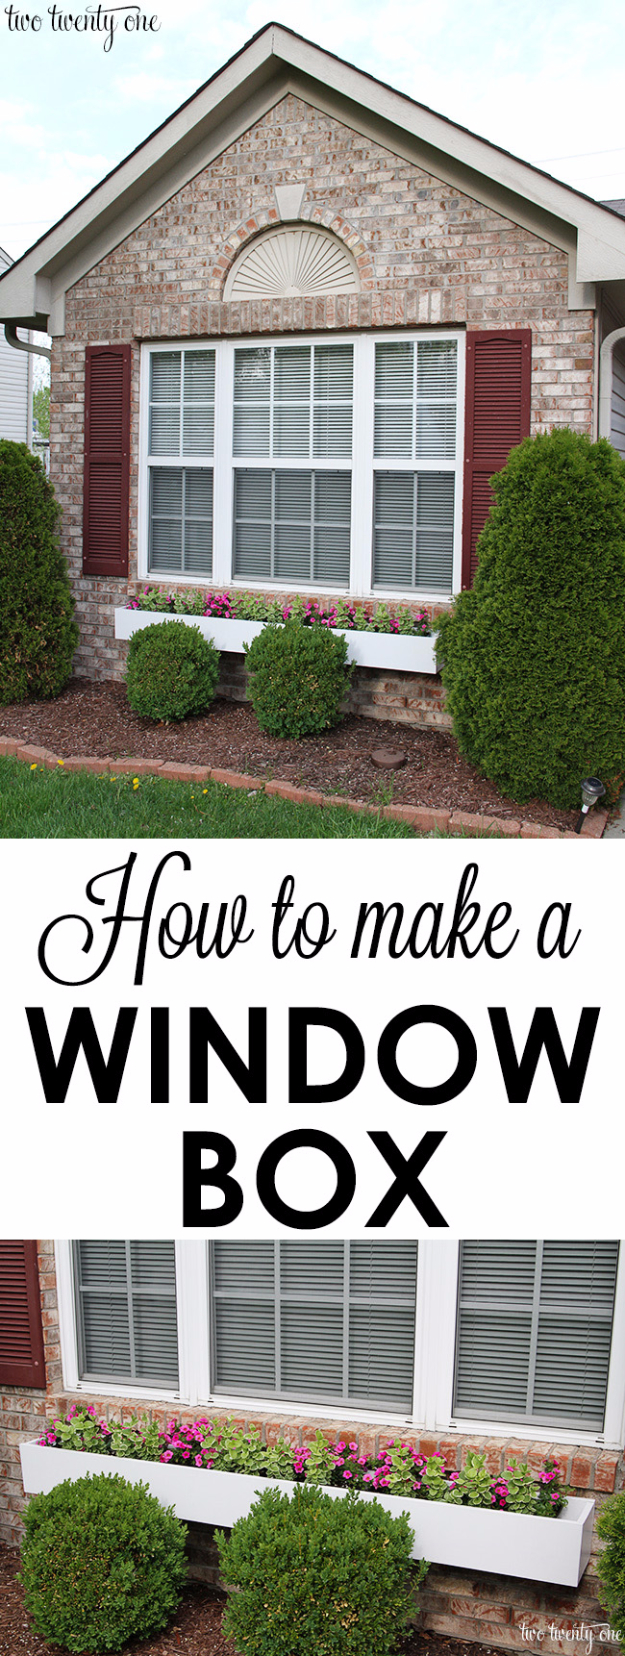 42 diy ideas to increase curb appeal diy joy Home selling four diy tricks to maximize the curb appeal